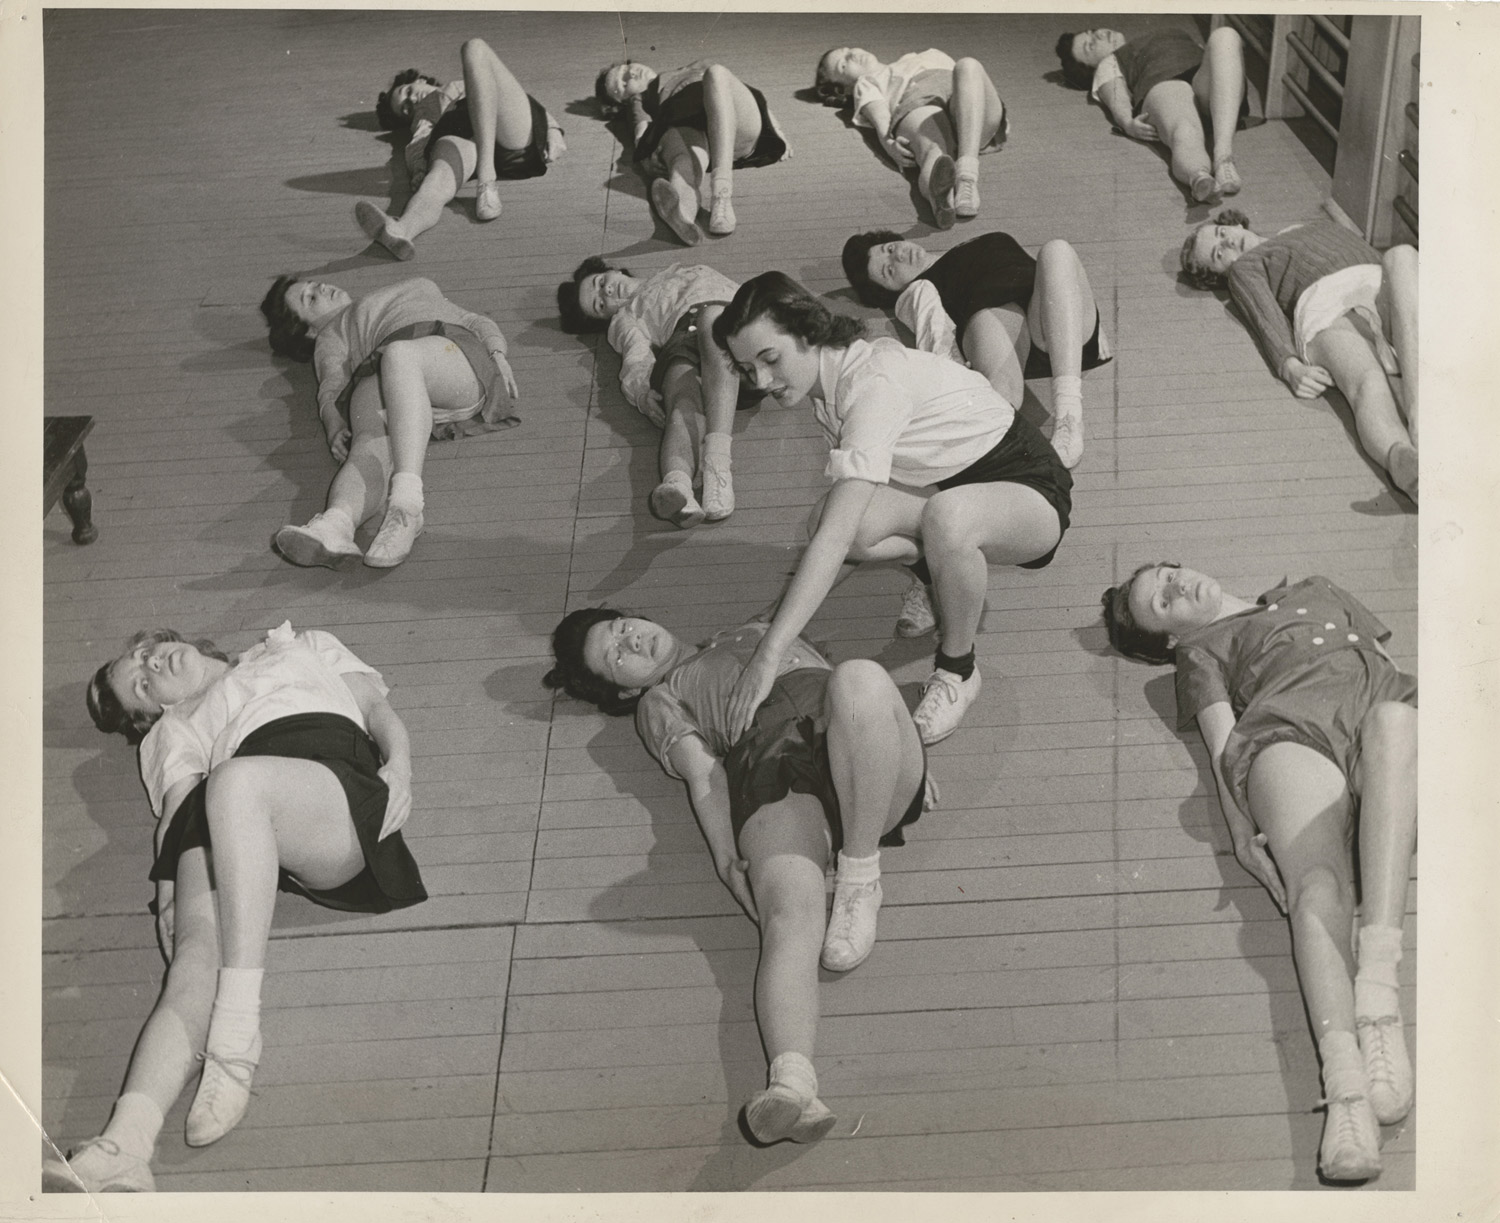 University of Toronto Physiotherapy Course, silver gelatin print, Canada, 1944